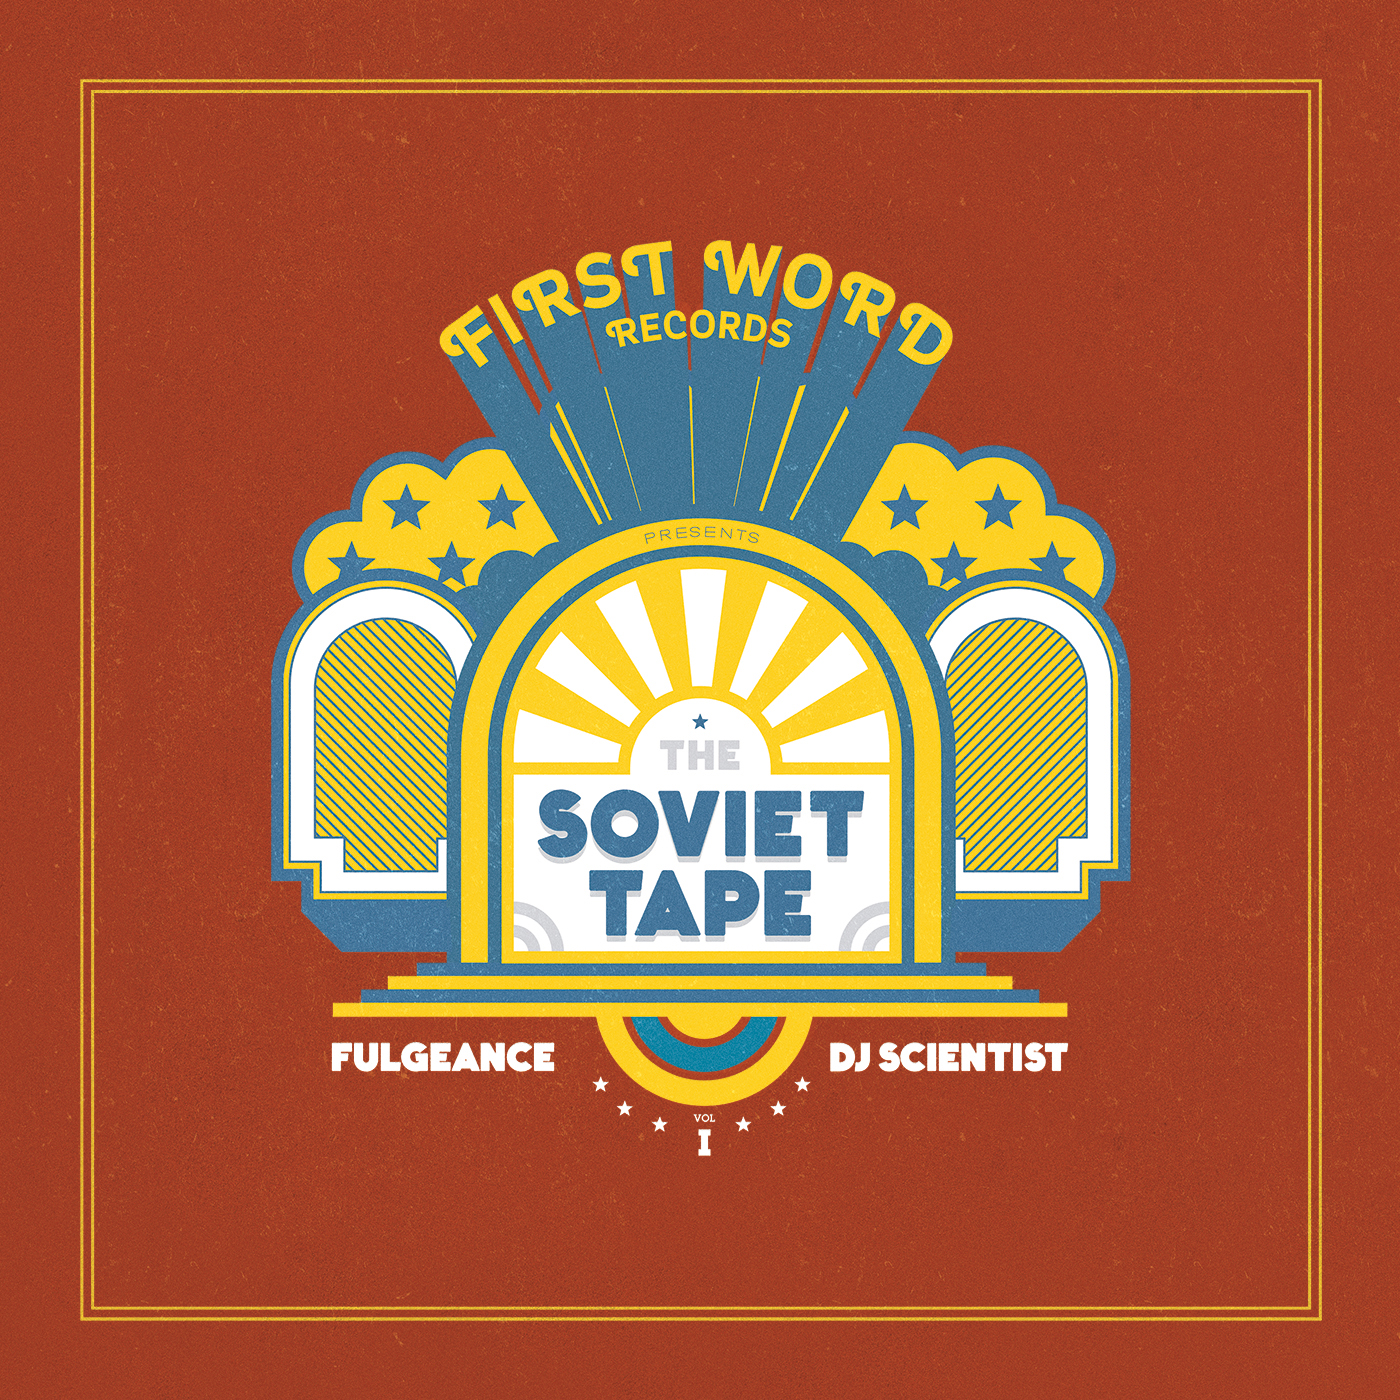 Fulgeance & DJ Scientist - The Soviet Tape Vol. 1 (LP)